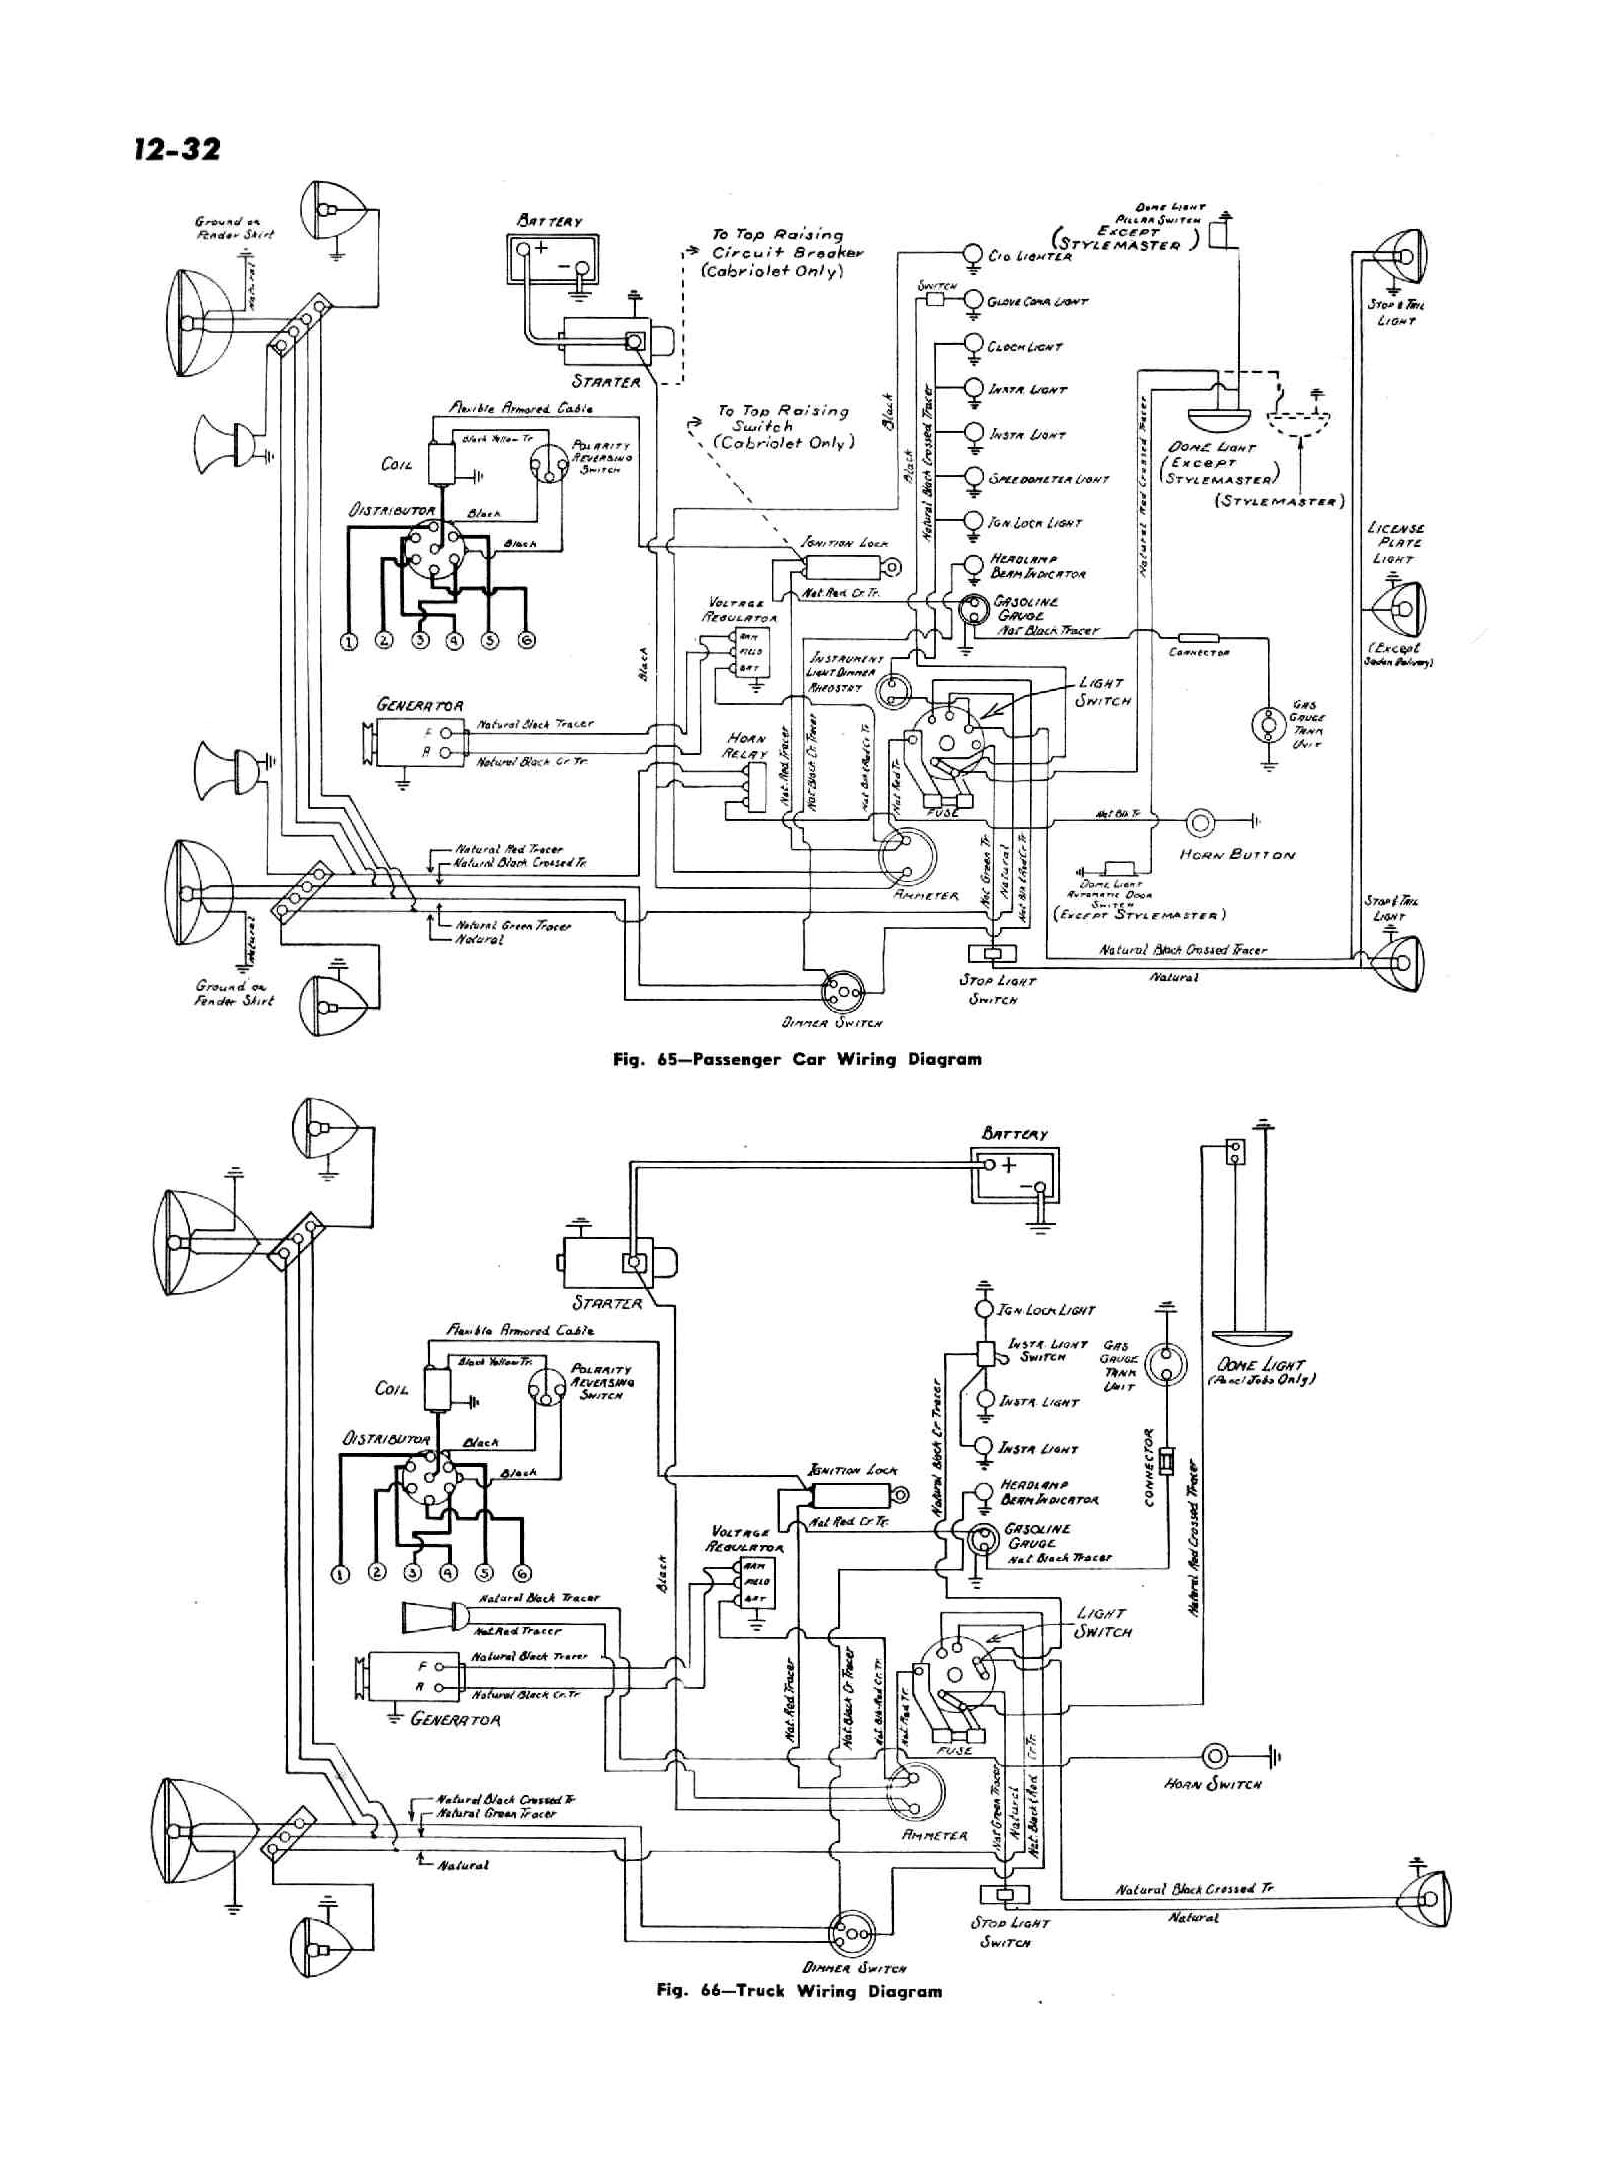 4247csm1232 chevy wiring diagrams mitsubishi mini truck wiring diagram at edmiracle.co